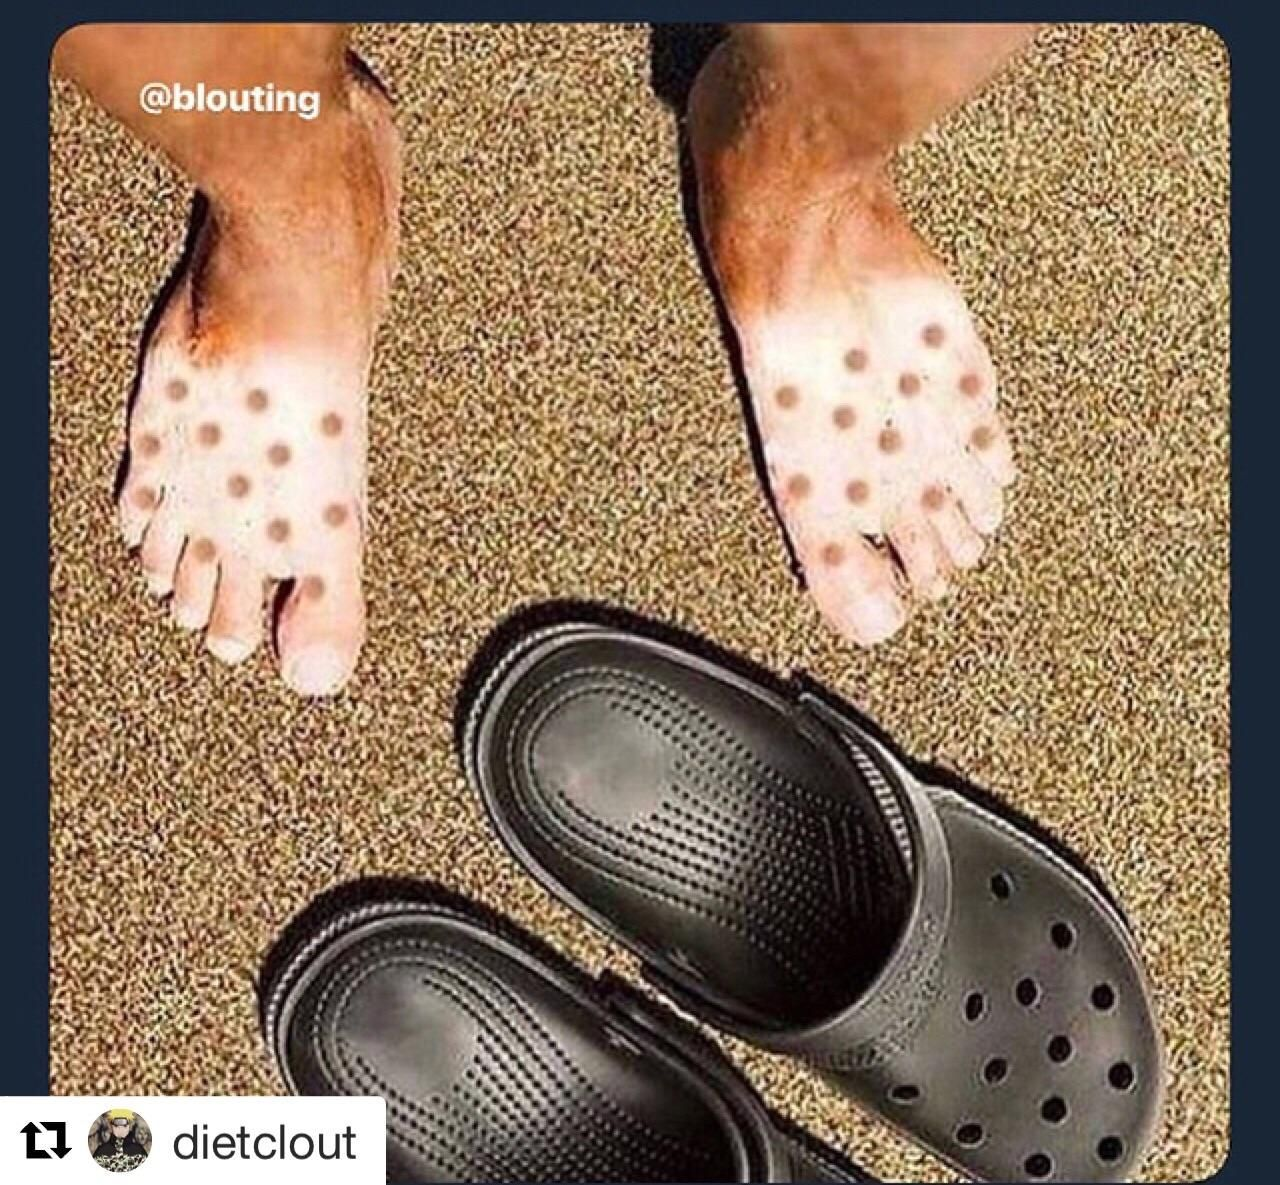 Don't wear crocs in the sun